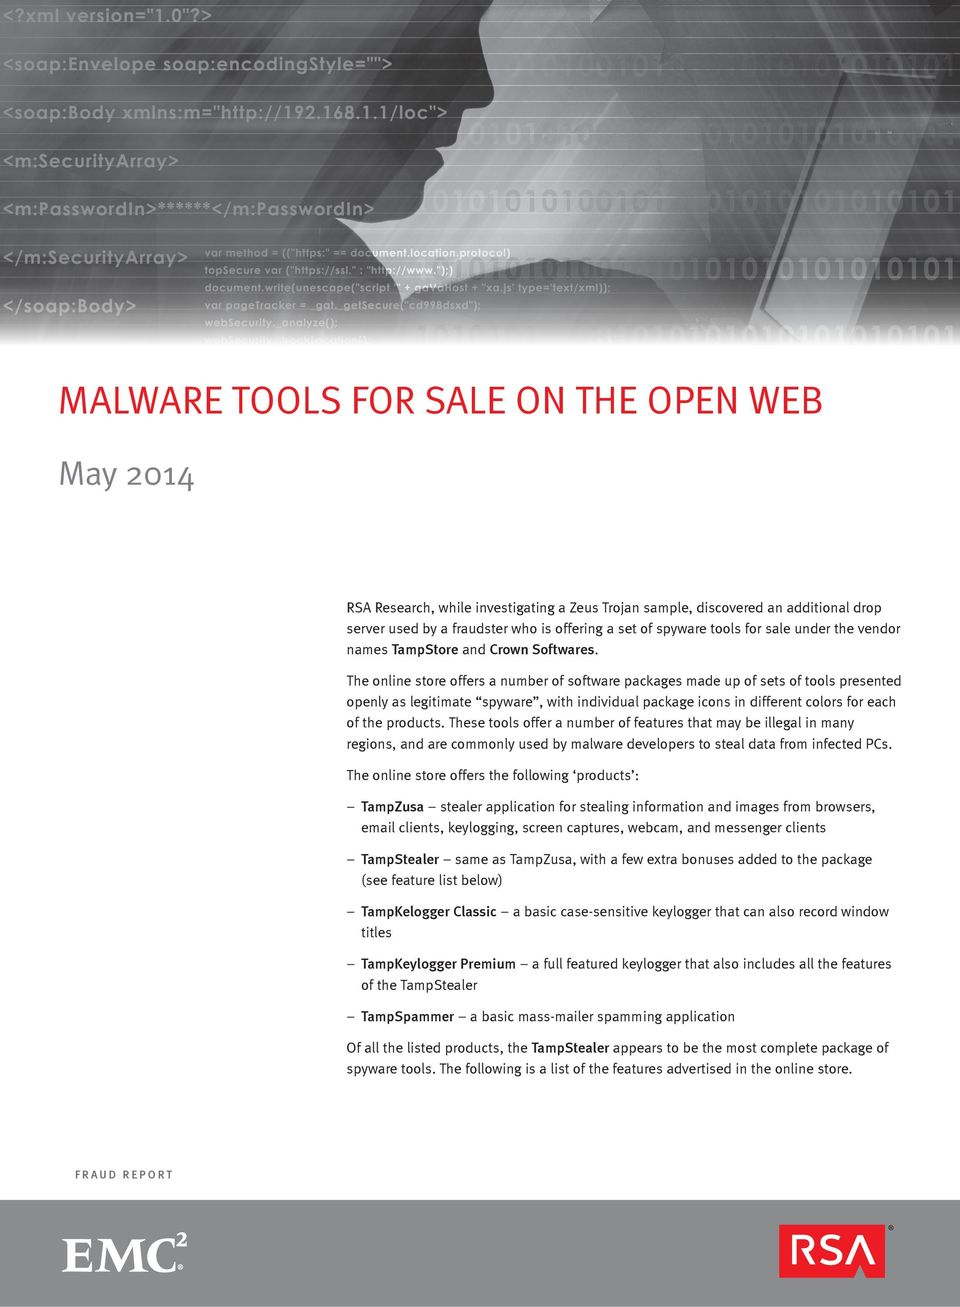 The online store offers a number of software packages made up of sets of tools presented openly as legitimate spyware, with individual package icons in different colors for each of the products.